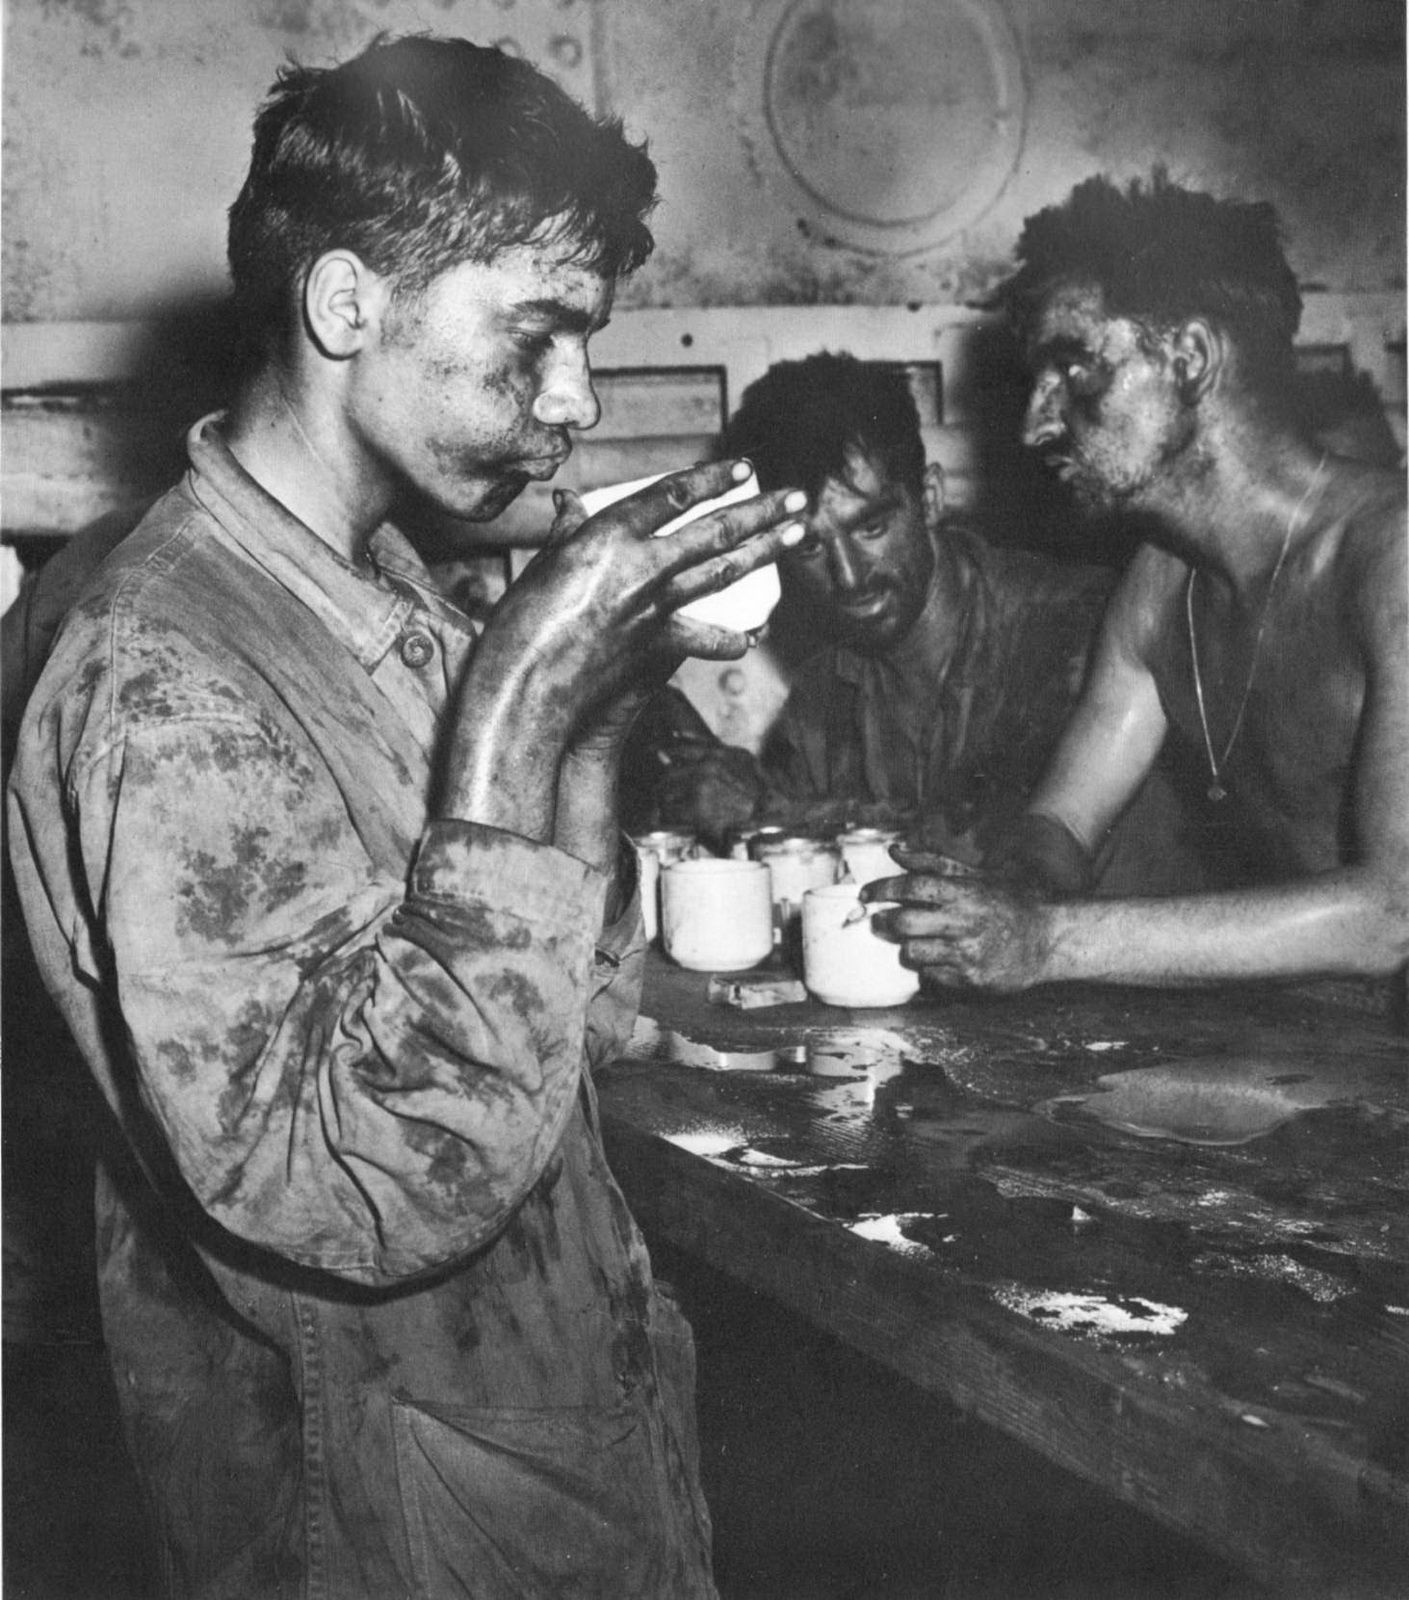 Marines aboard USS Arthur Middleton after fighting in the Marshall Islands, Feb 1944